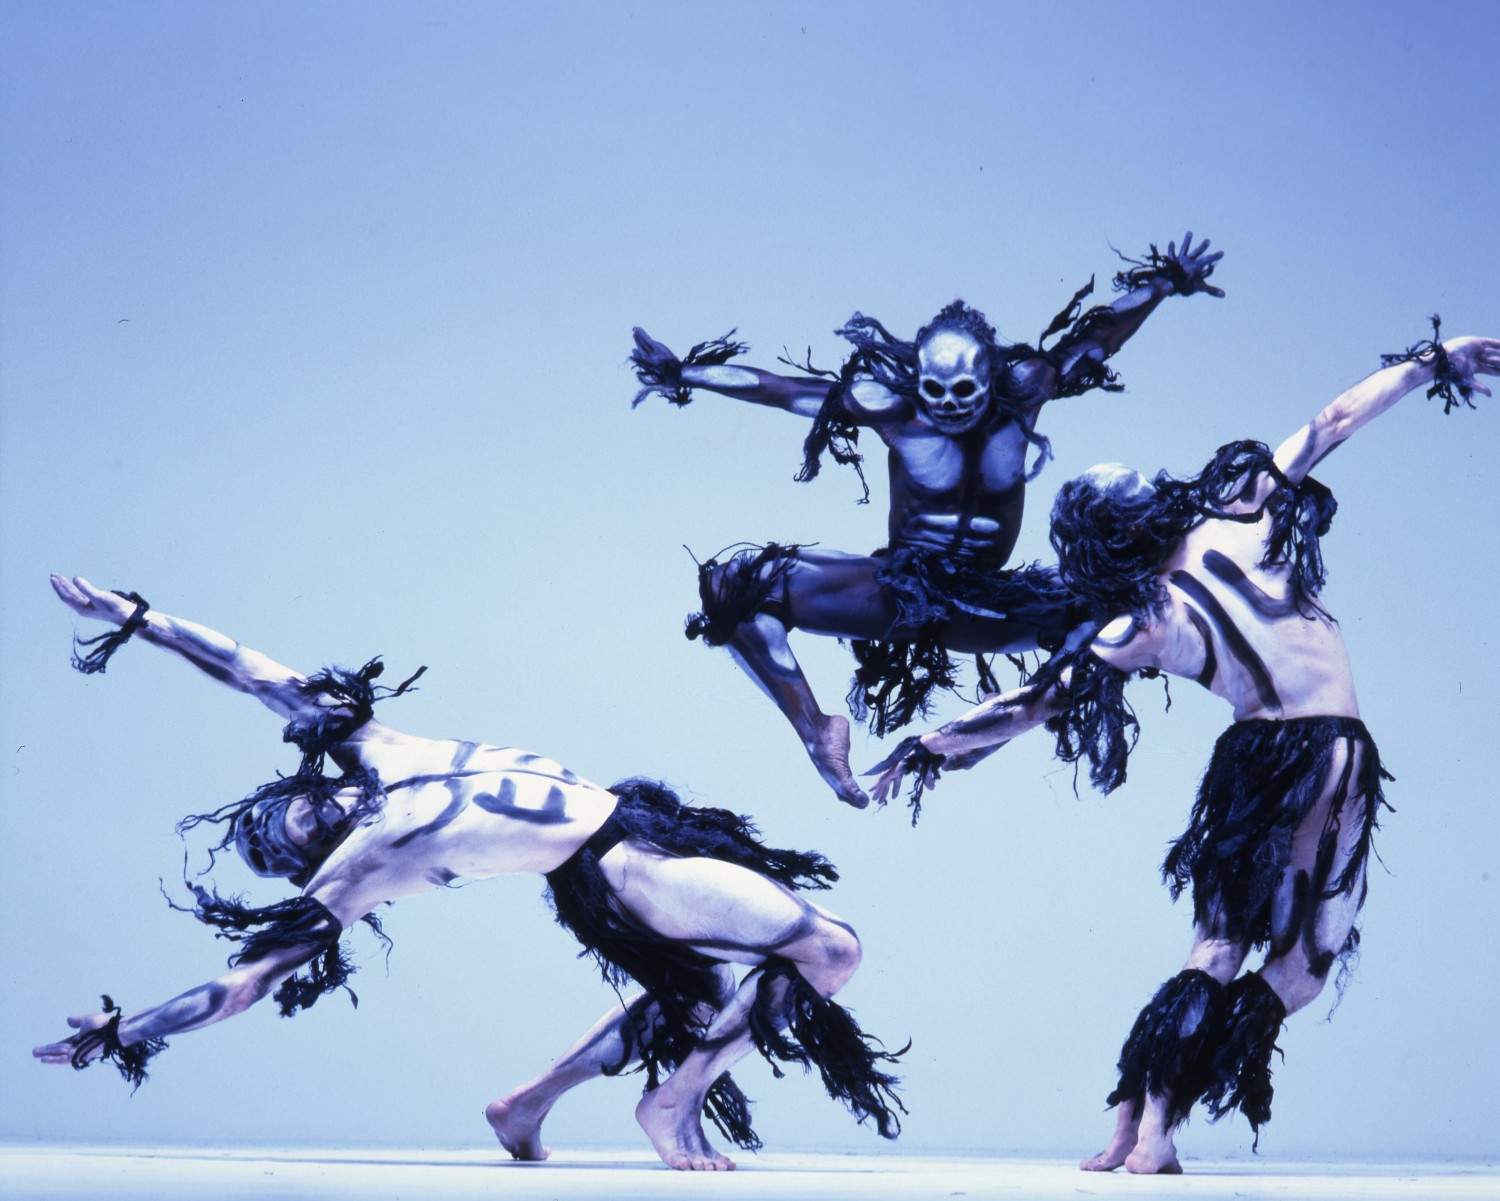 Ghost Dances | Rambert | Choreographed by Christopher Bruce | Costumes by Belinda Scarlett | Lighting by Nick Chelton